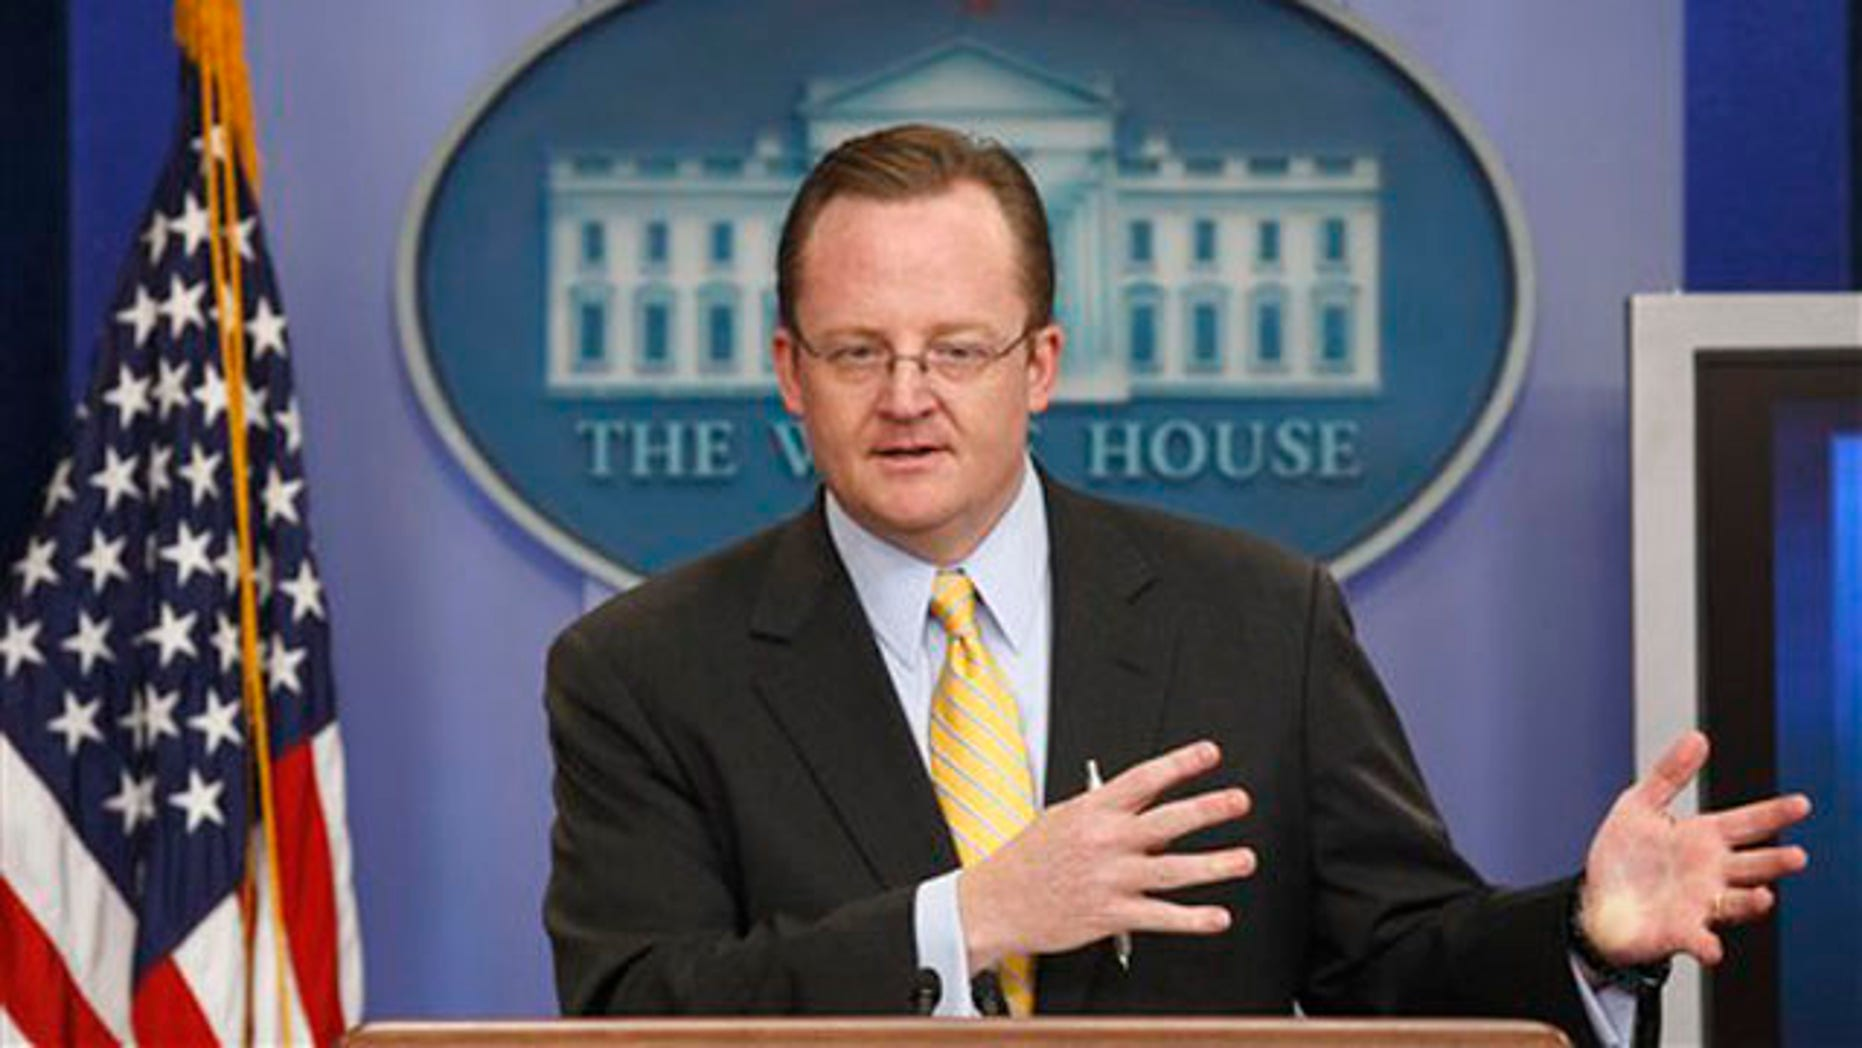 White House Press Secretary Robert Gibbs speaks at the daily news briefing at the White House Sept. 21. (AP Photo)